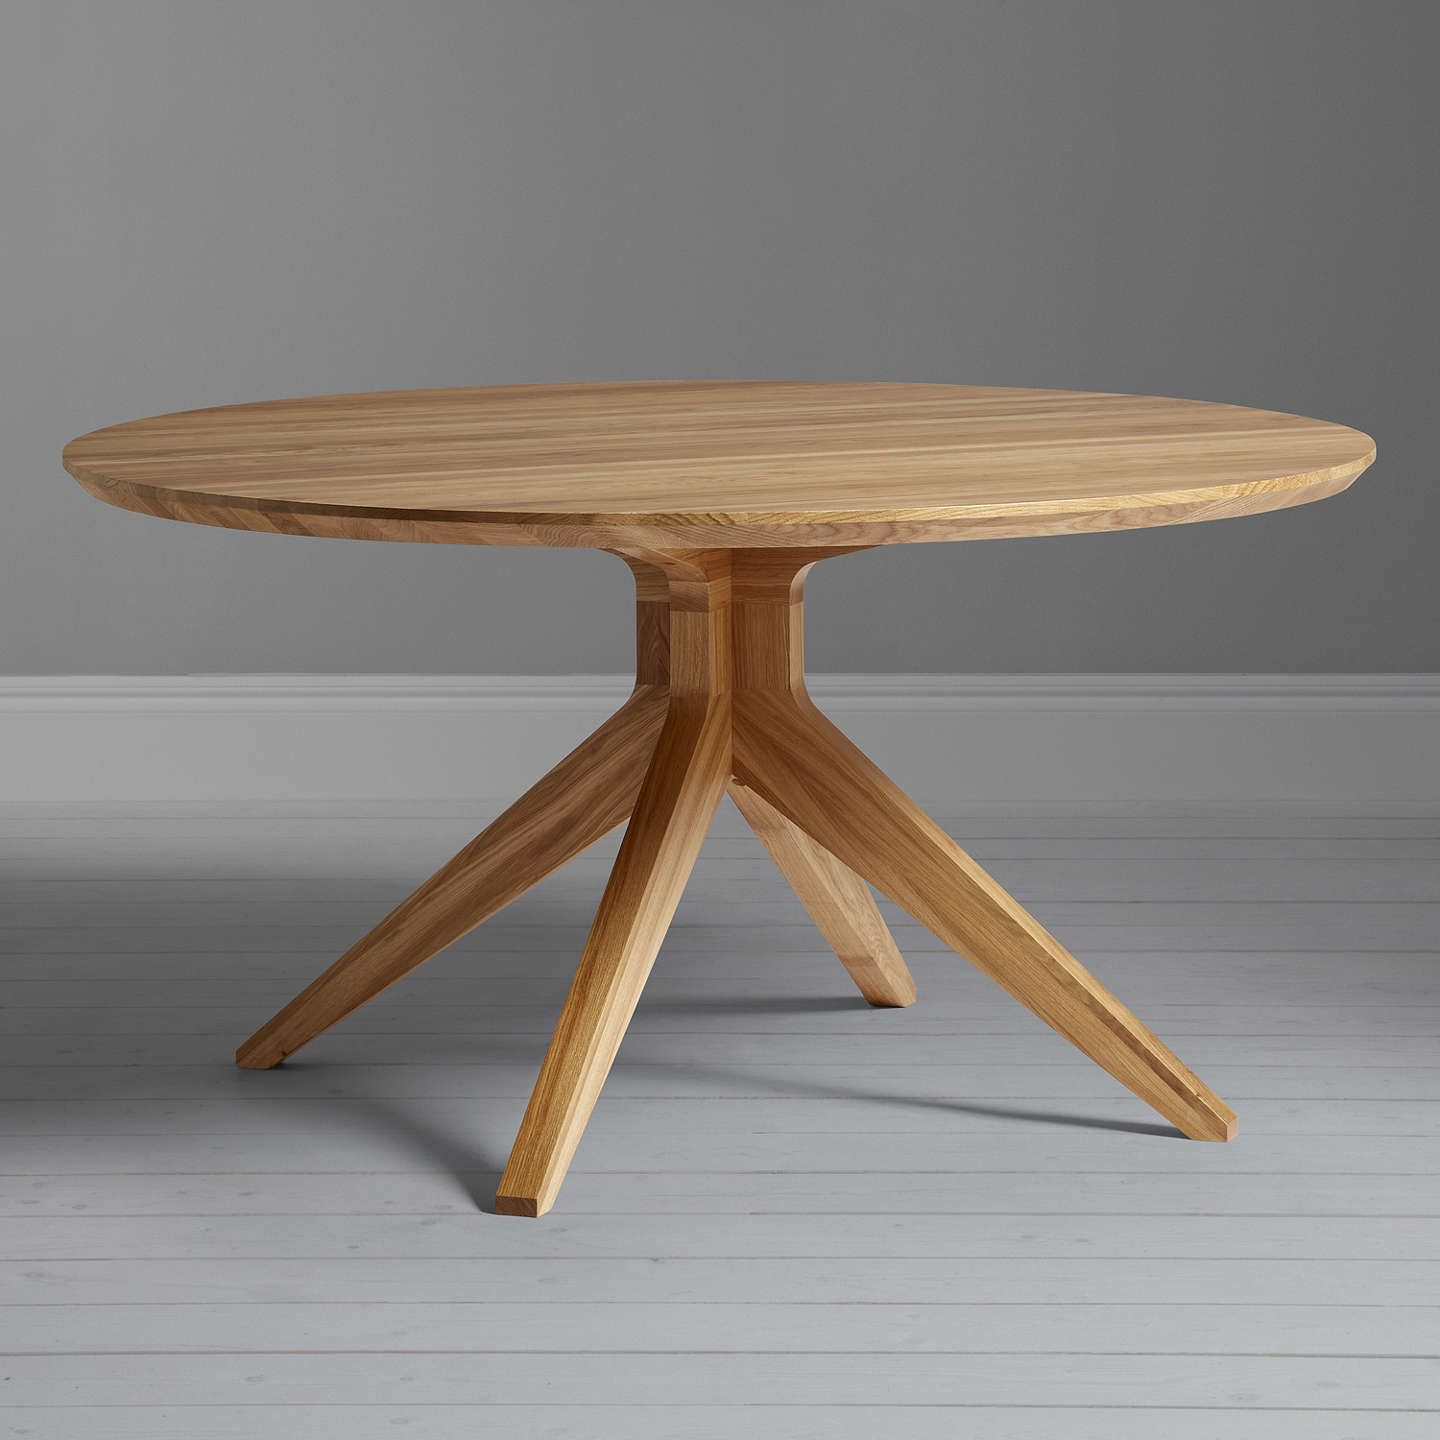 Matthew hilton for case cross seater round dining table oak